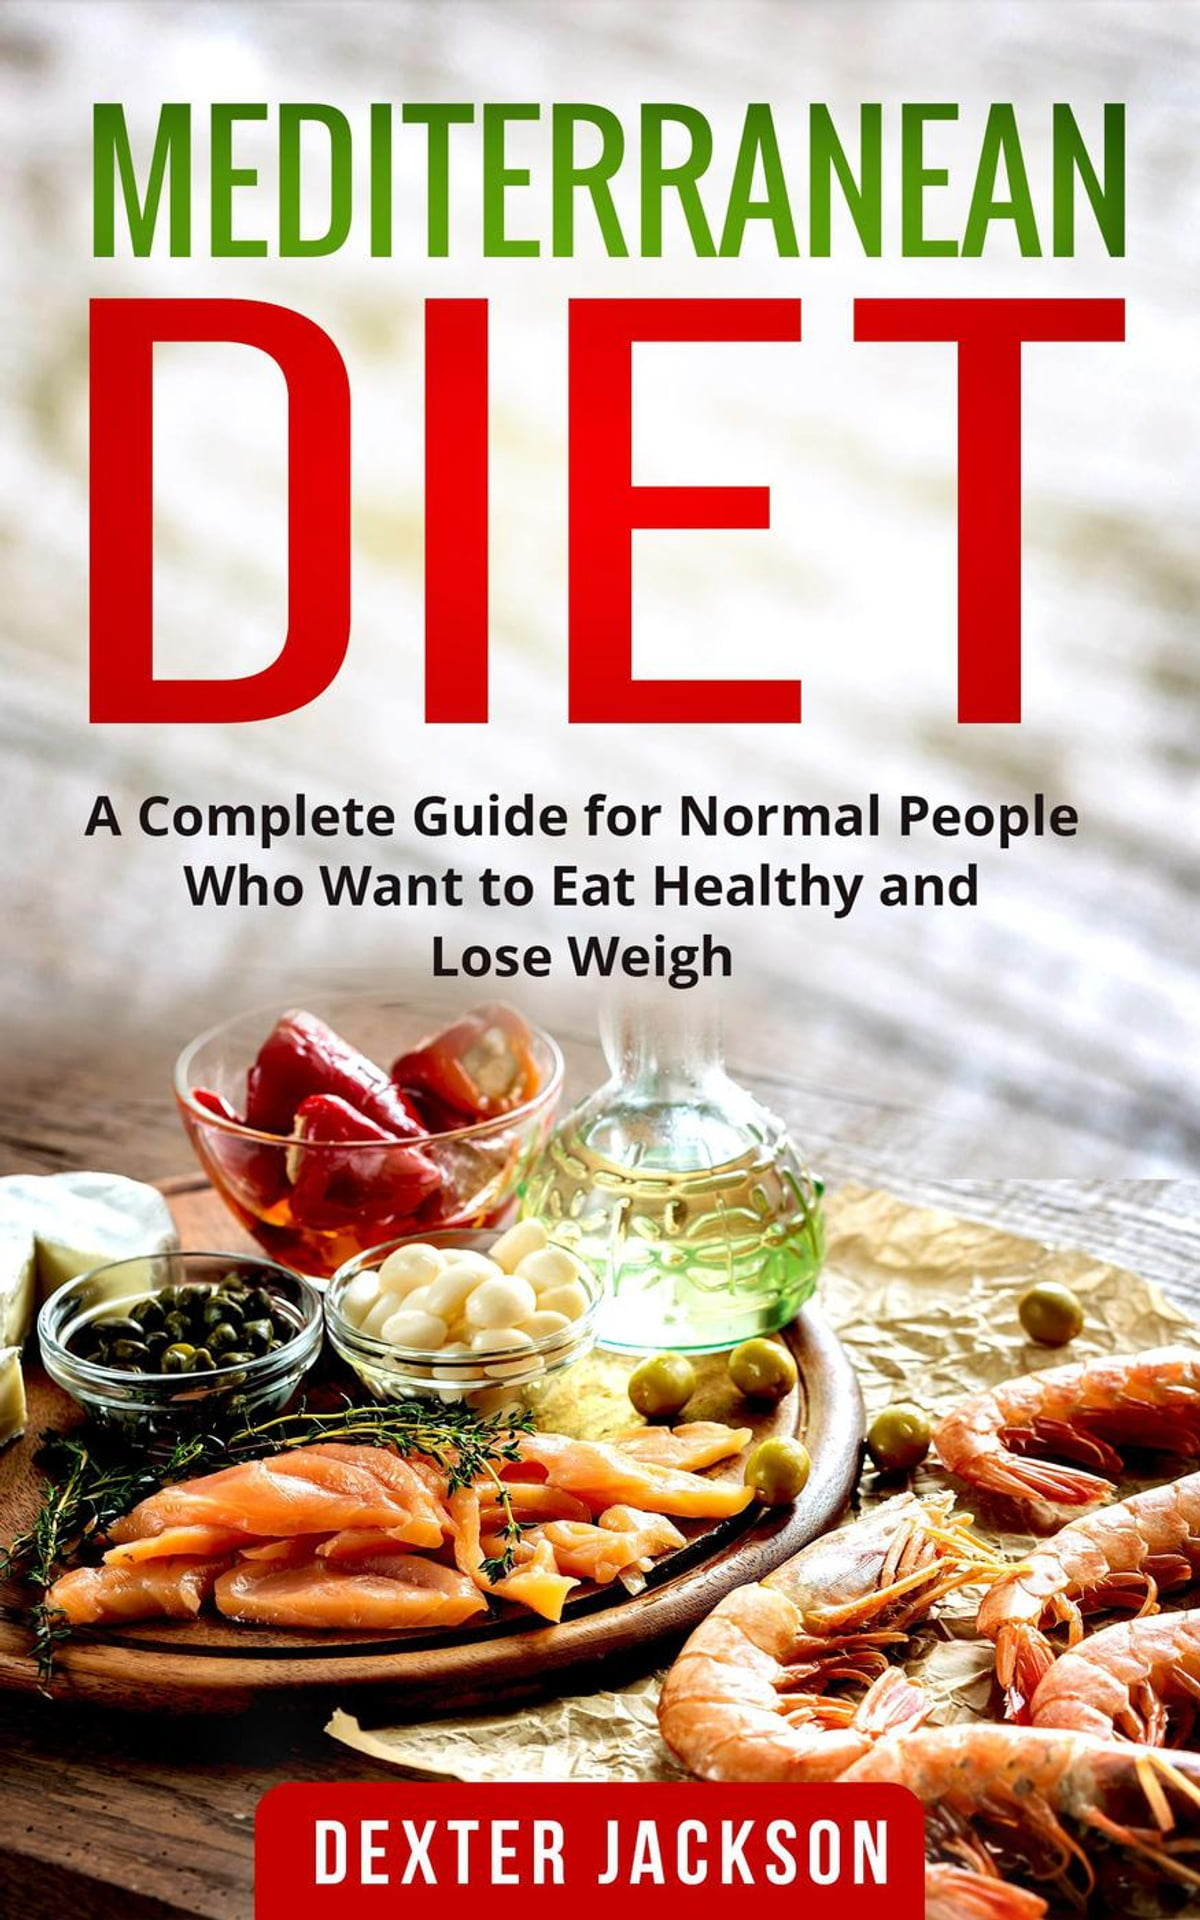 Mediterranean Diet The Complete Guide With Meal Plan And Recipes For Normal People Who Want To Eat Healthy And Lose Weight Ebook By Dexter Jackson